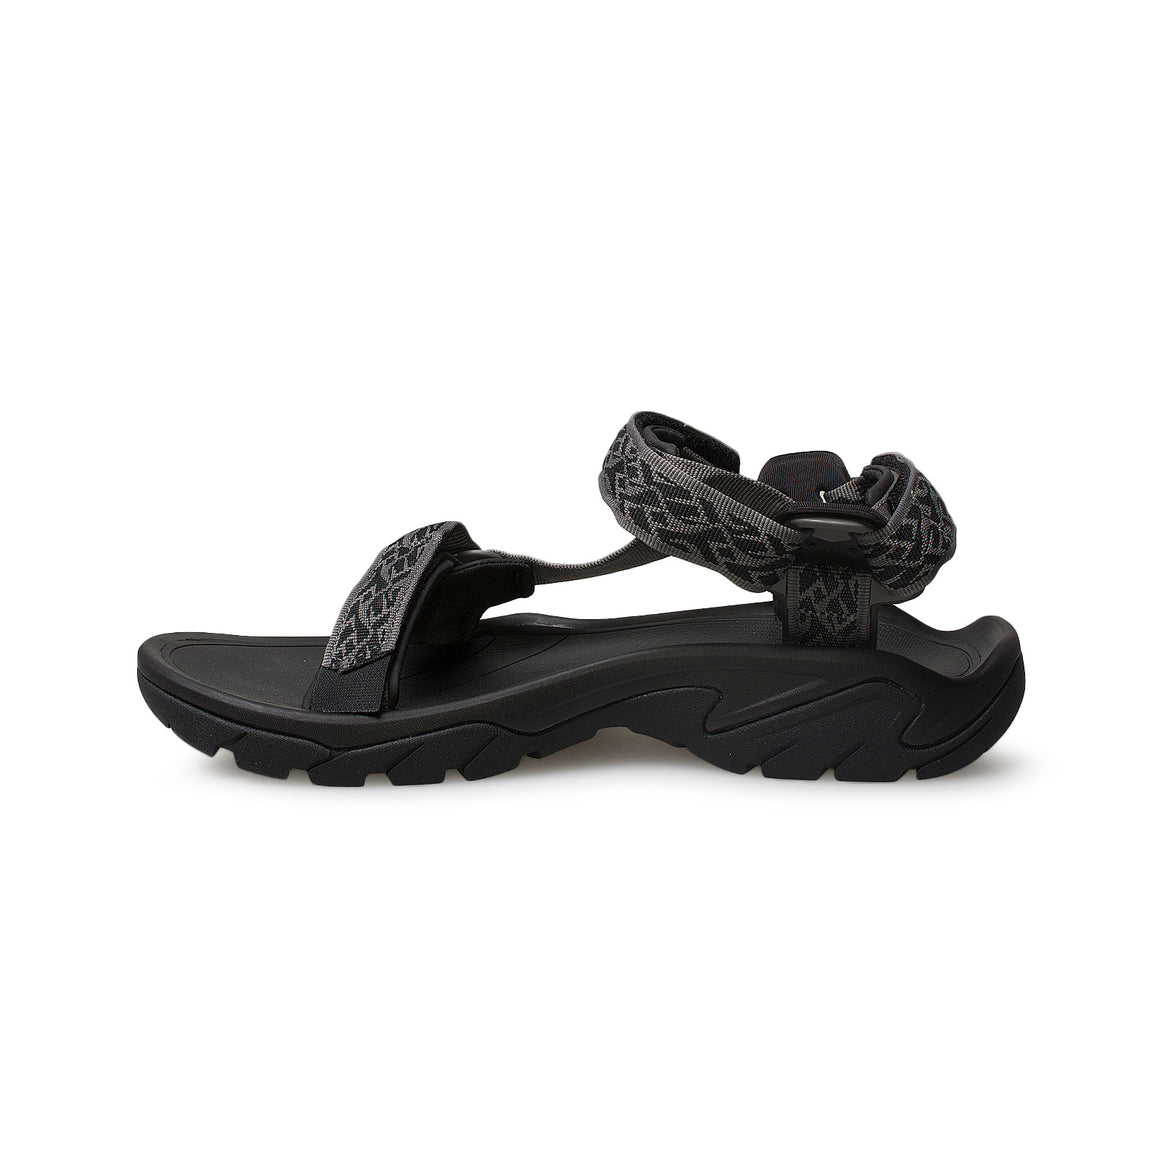 Teva Terra FI 5 Universal Wavy Trail Black Sandals - Men's